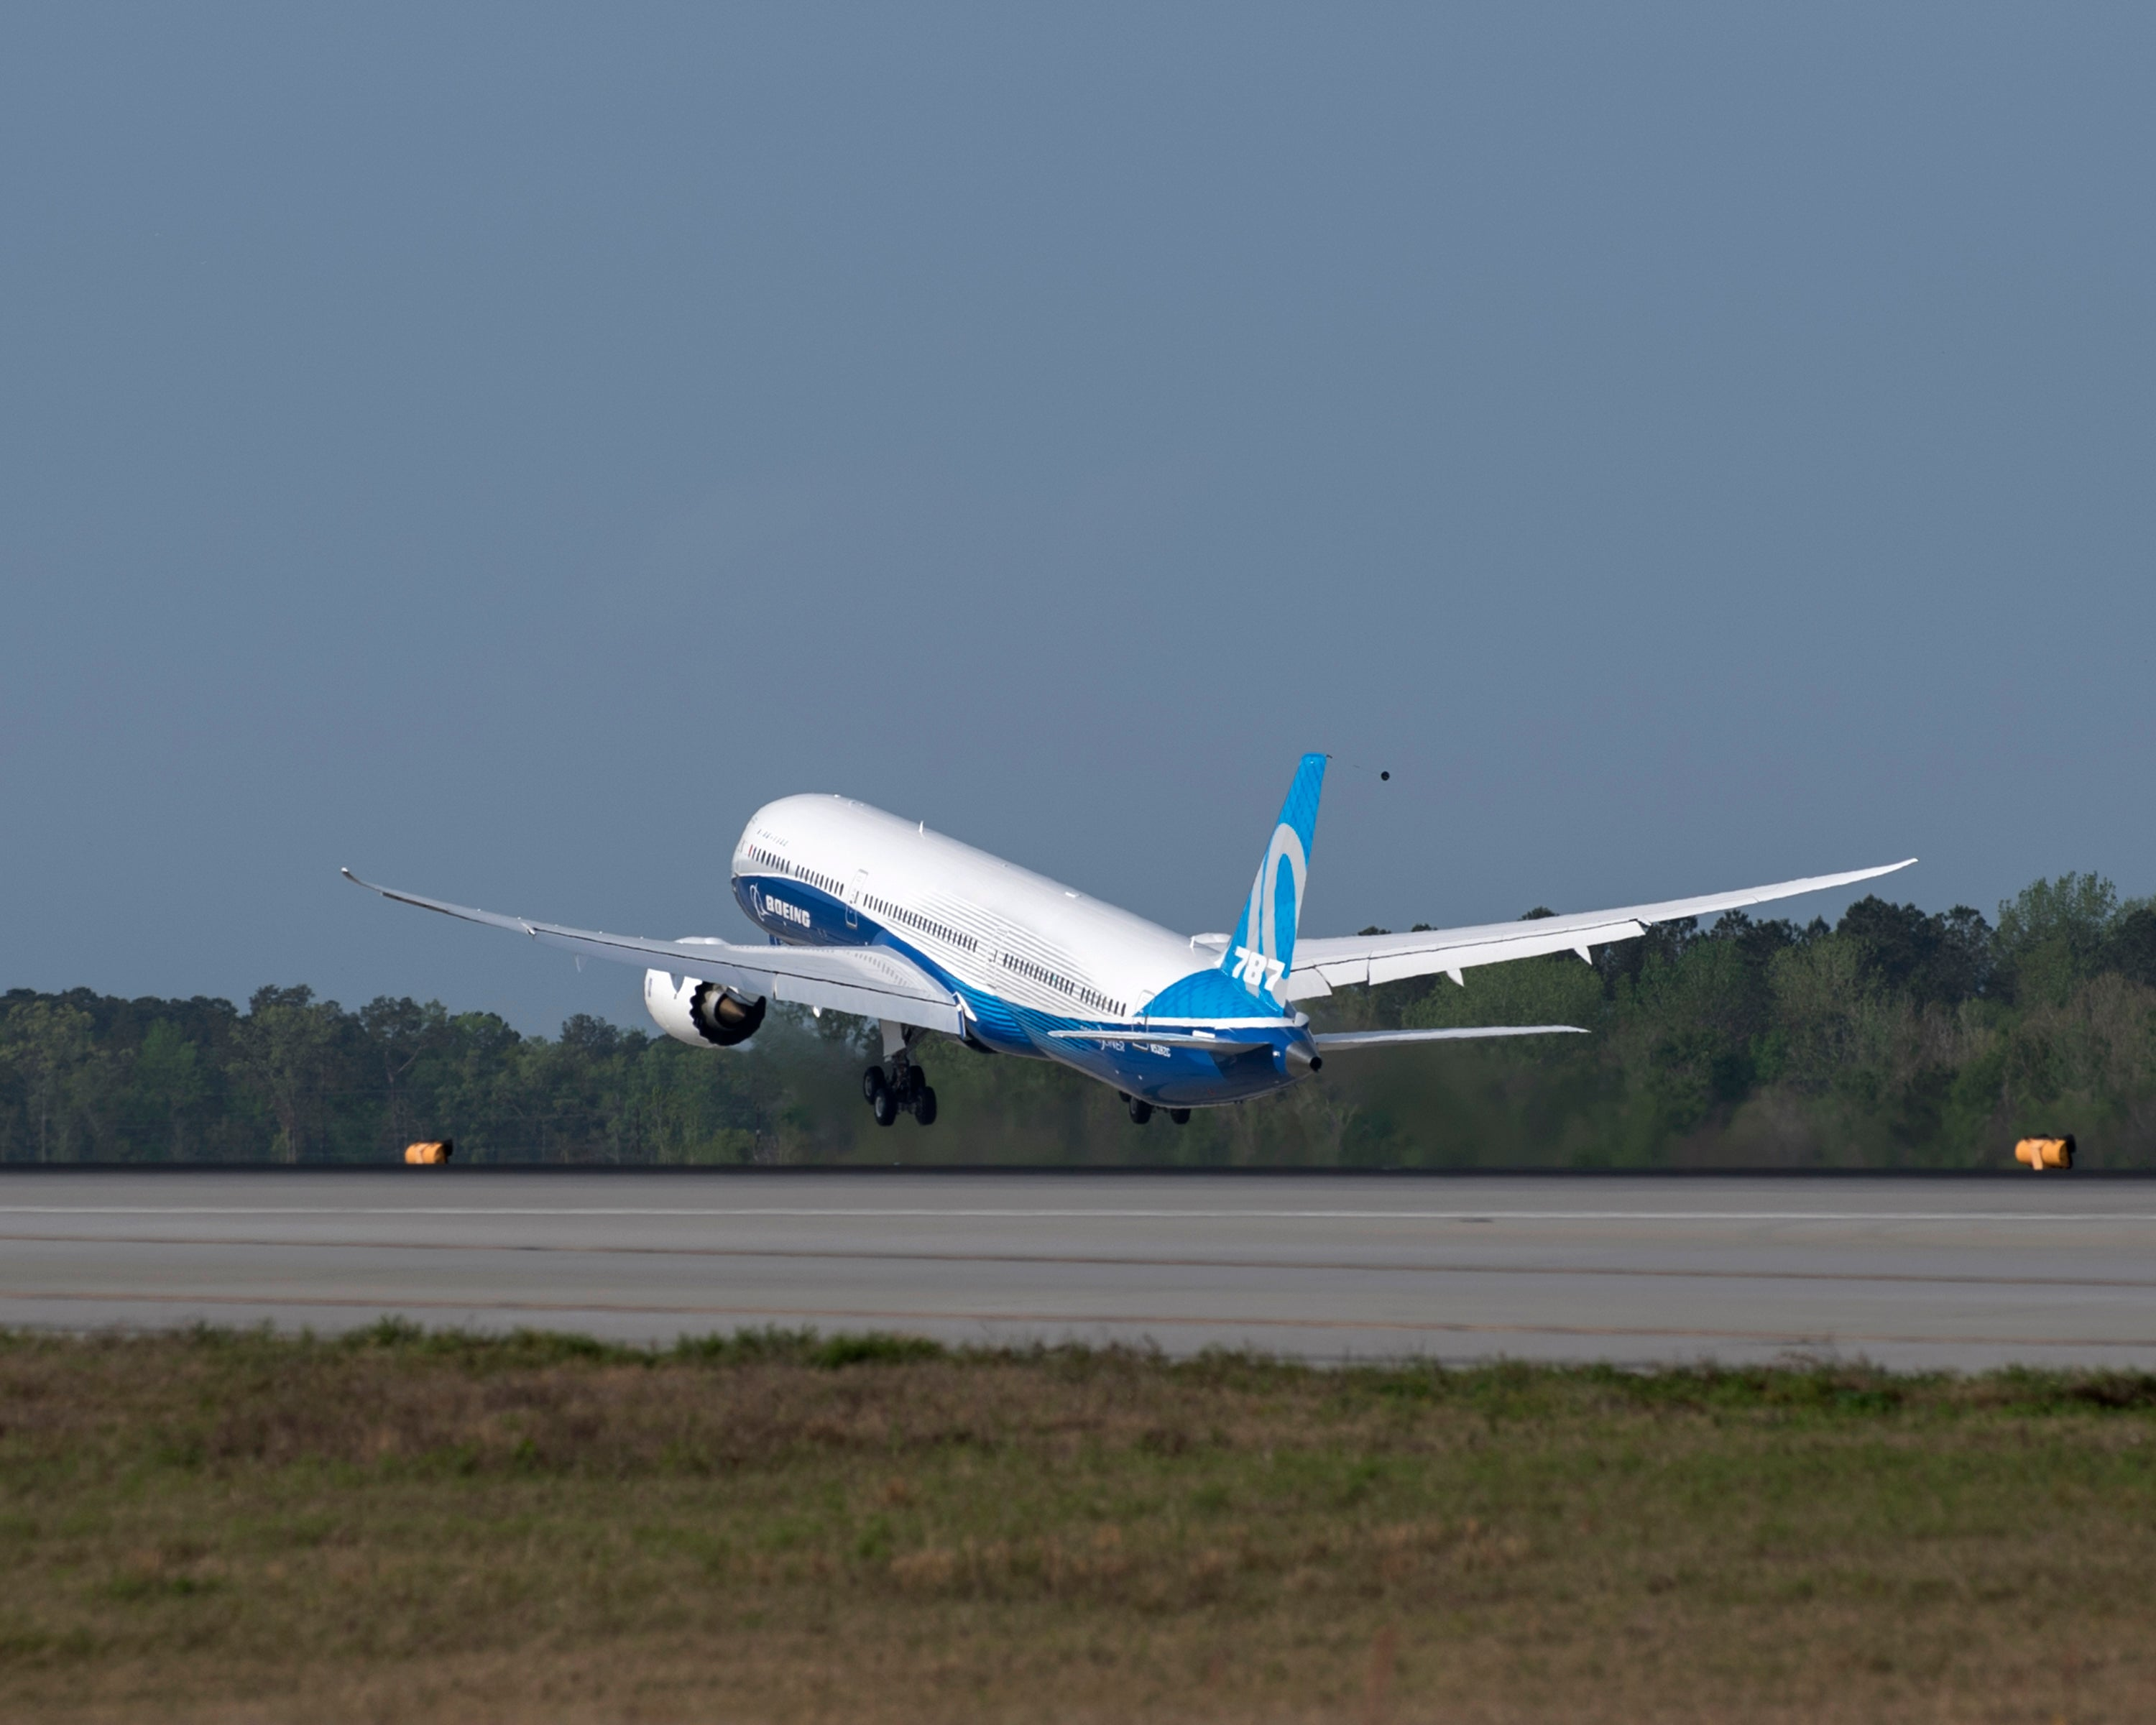 Boeing CEO's Dreamliner Recovery Prediction Is a Pipe Dream